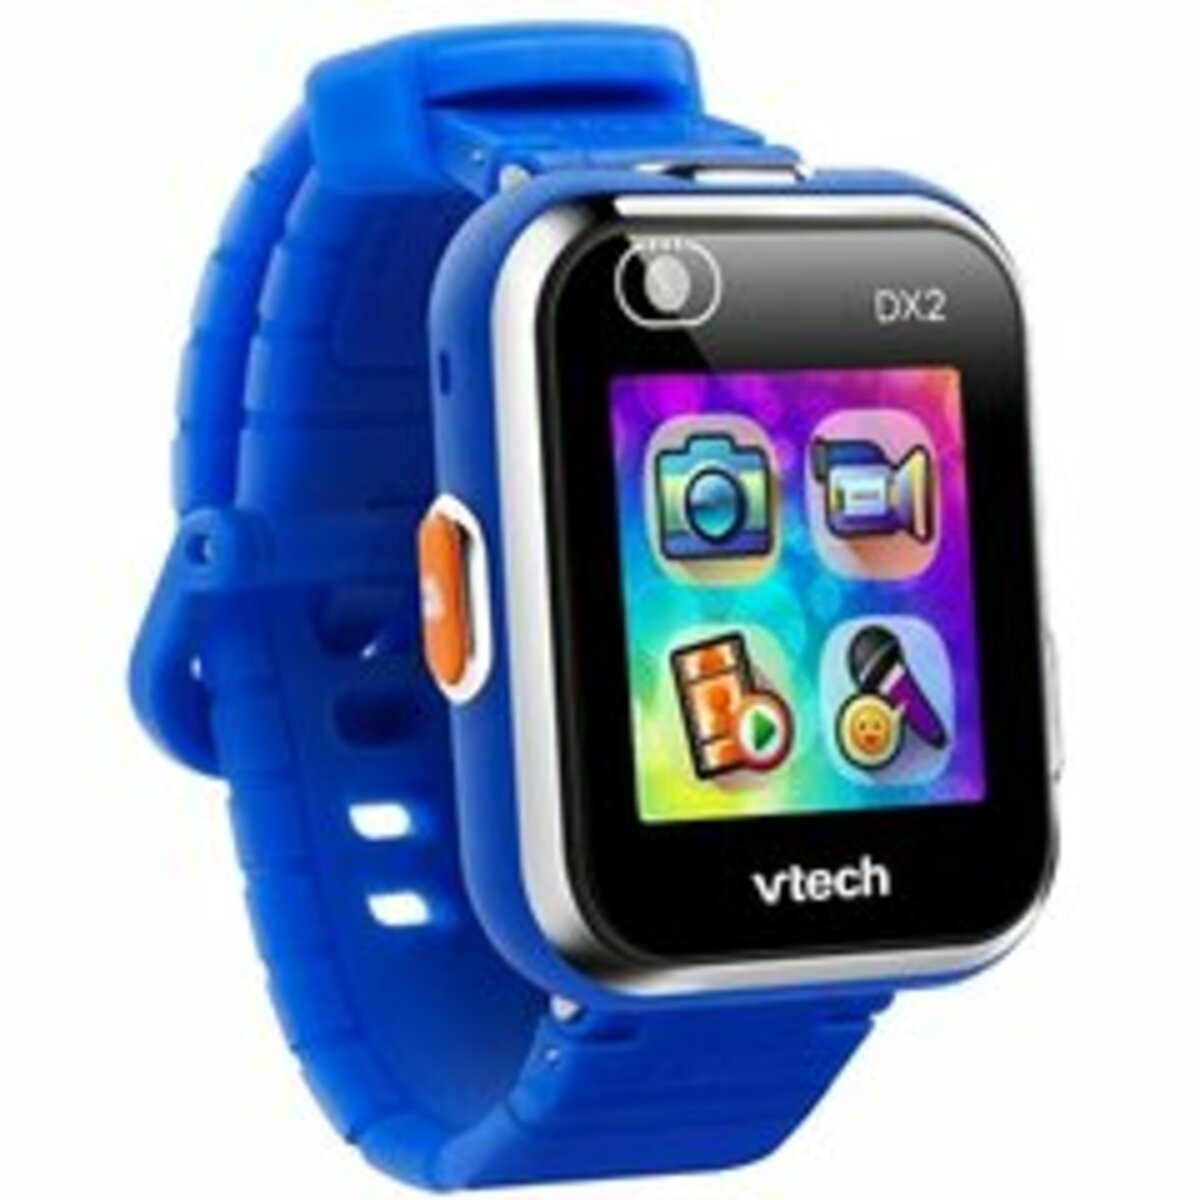 Bild 5 von VTech - Kidizoom: Smart Watch DX2, blau